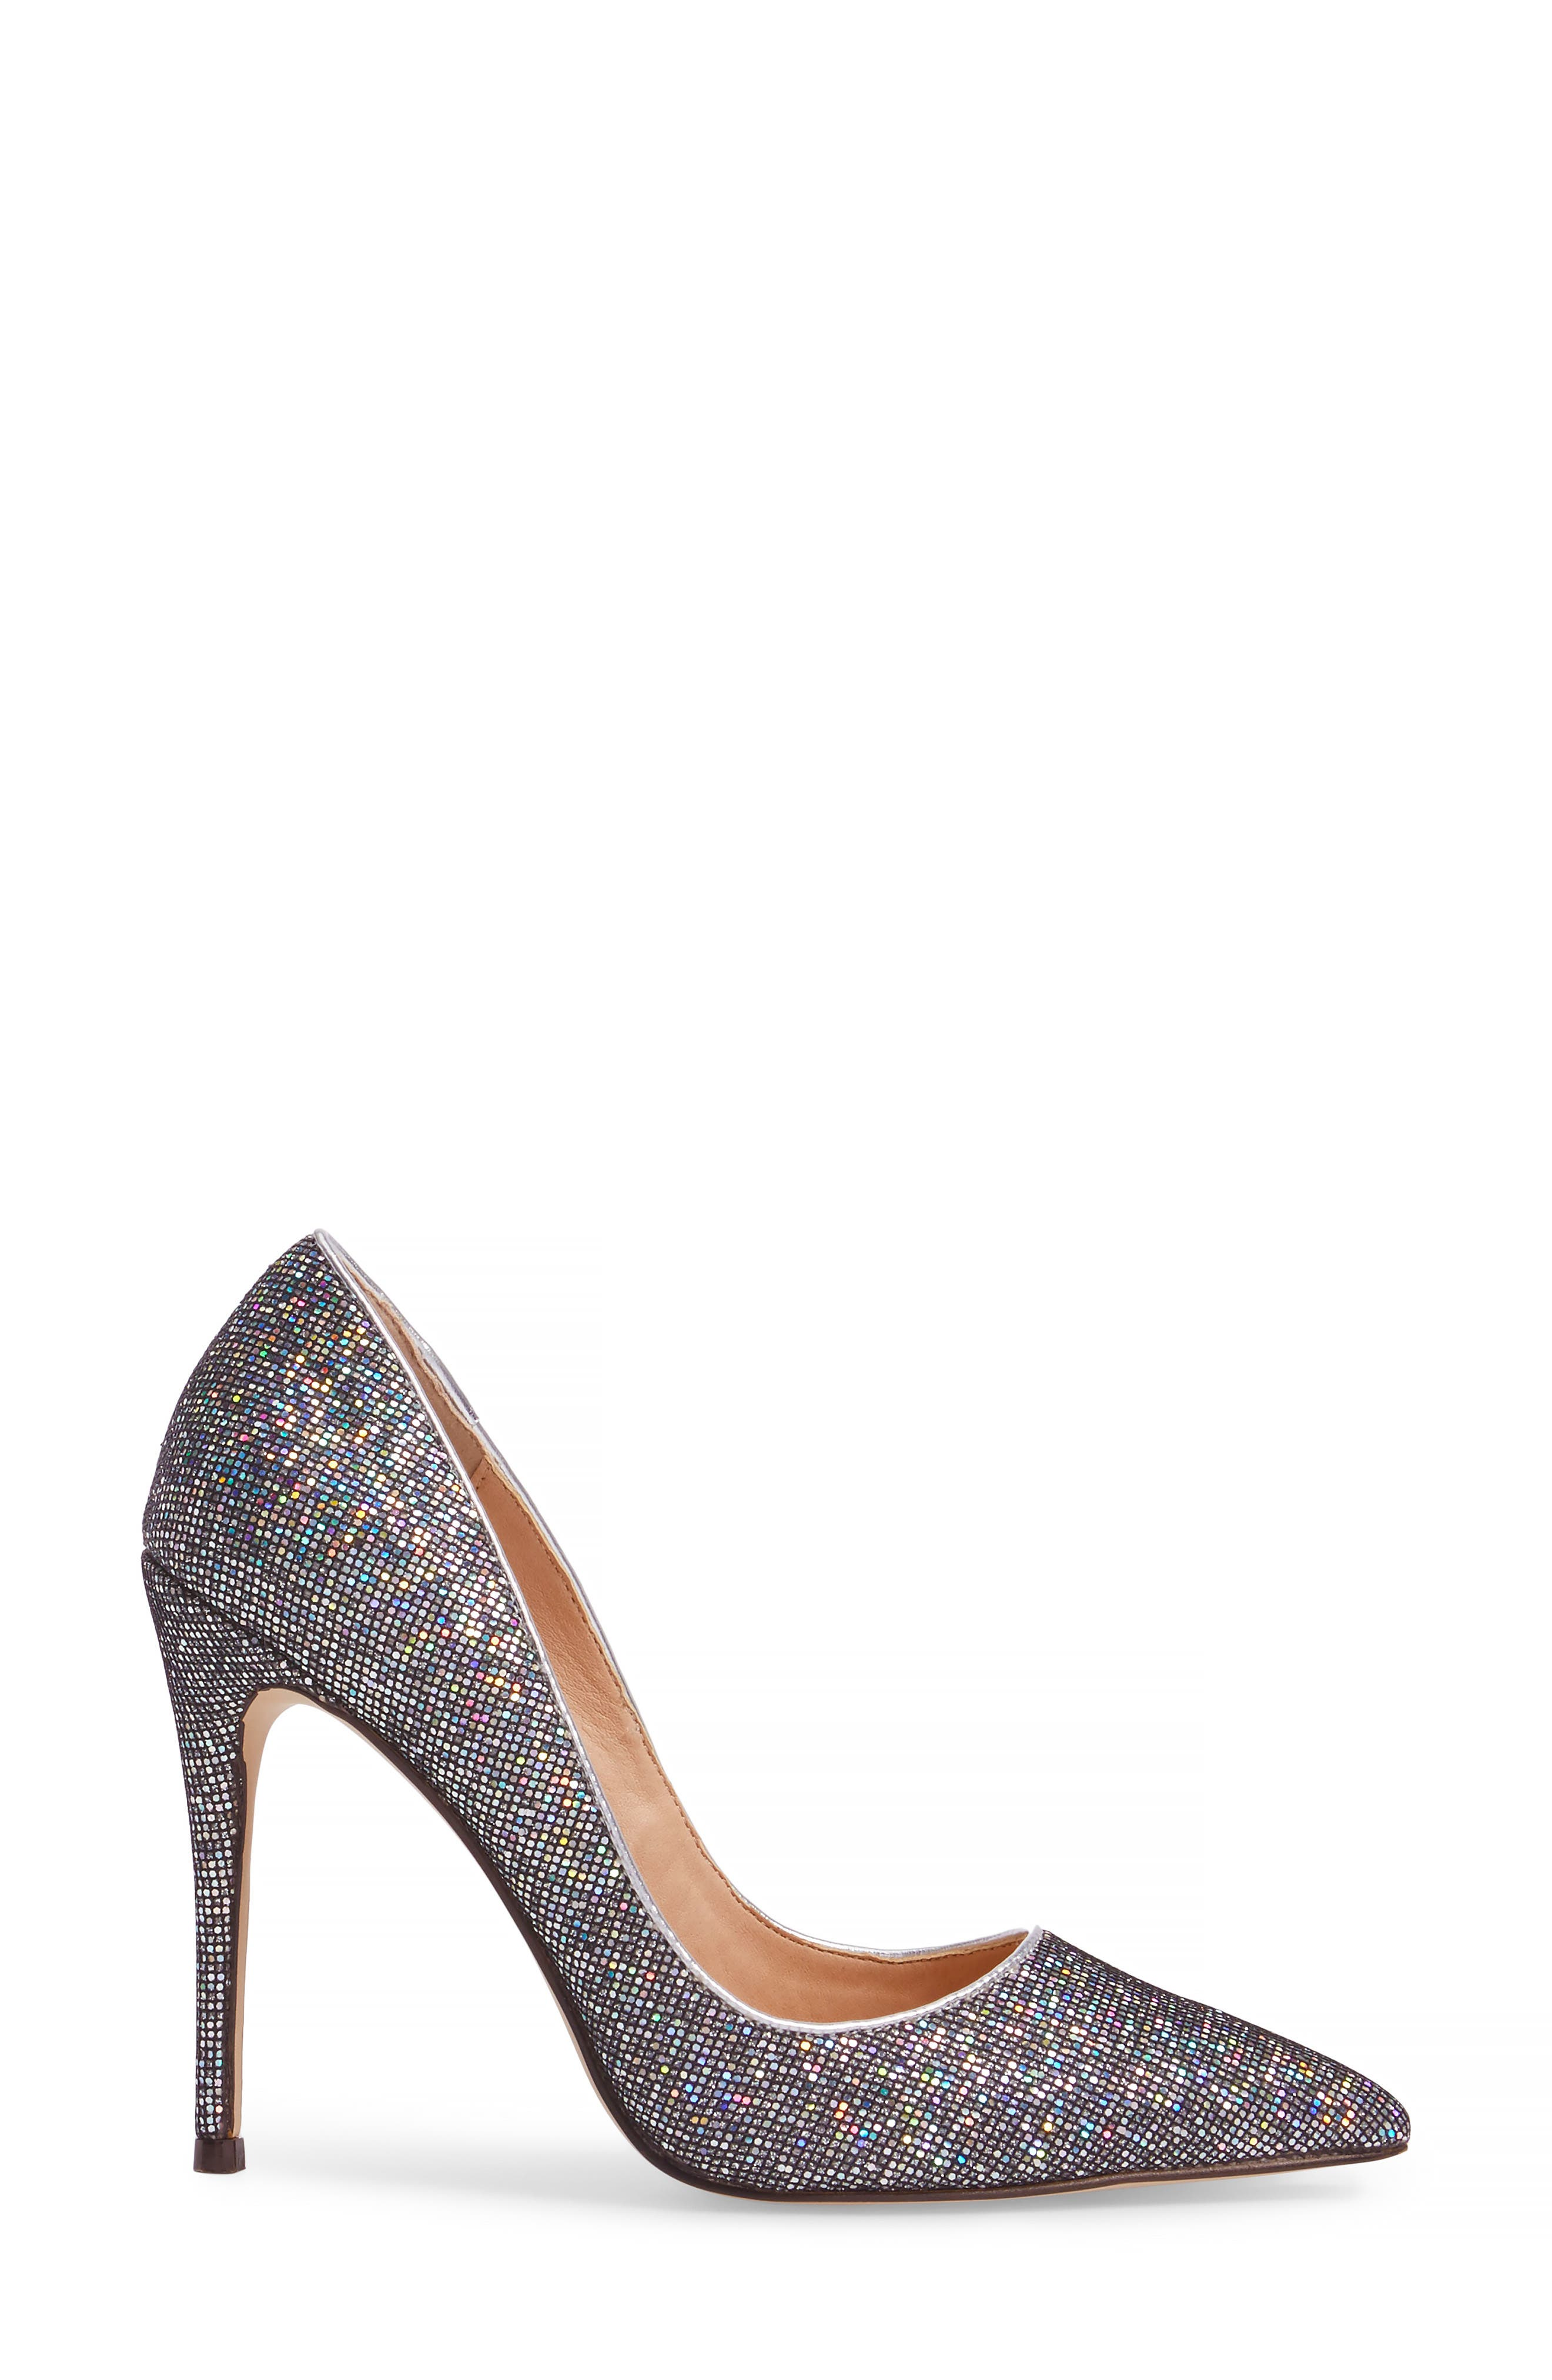 Daisie Pointy-Toe Pump,                             Alternate thumbnail 3, color,                             Black Multi Glitter